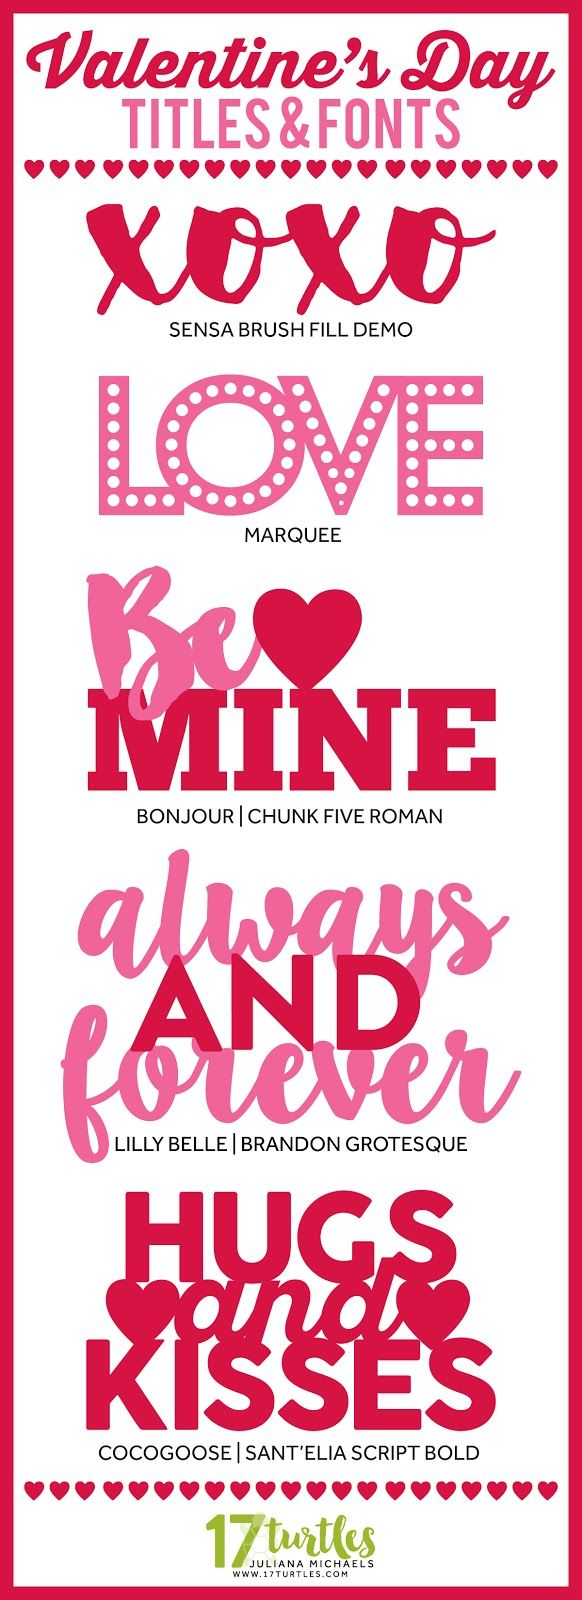 Valentine's Day Titles & Fonts by Juliana Michaels 17turtles